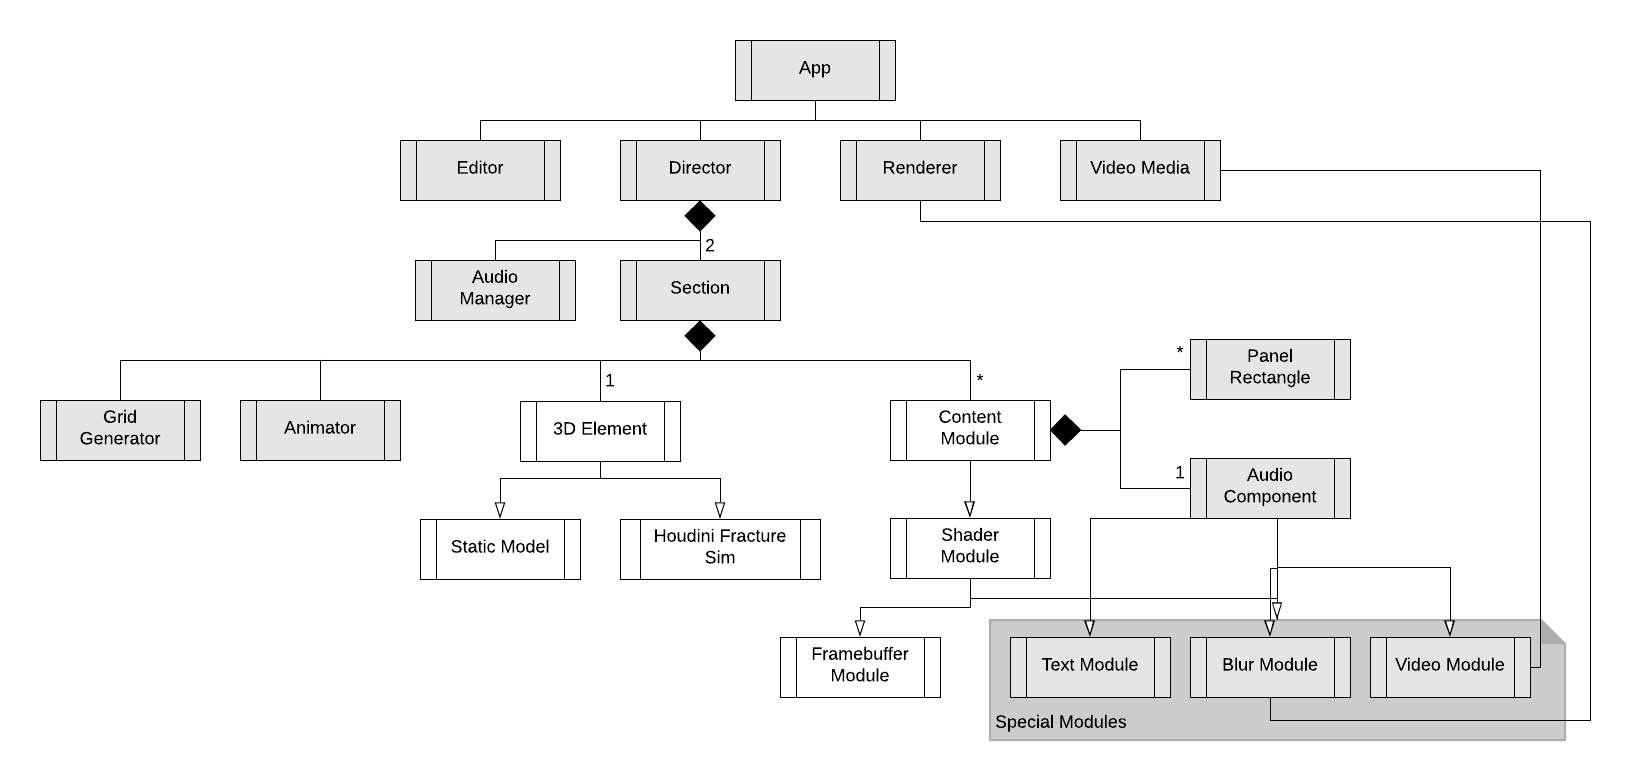 Overview of the app architecture